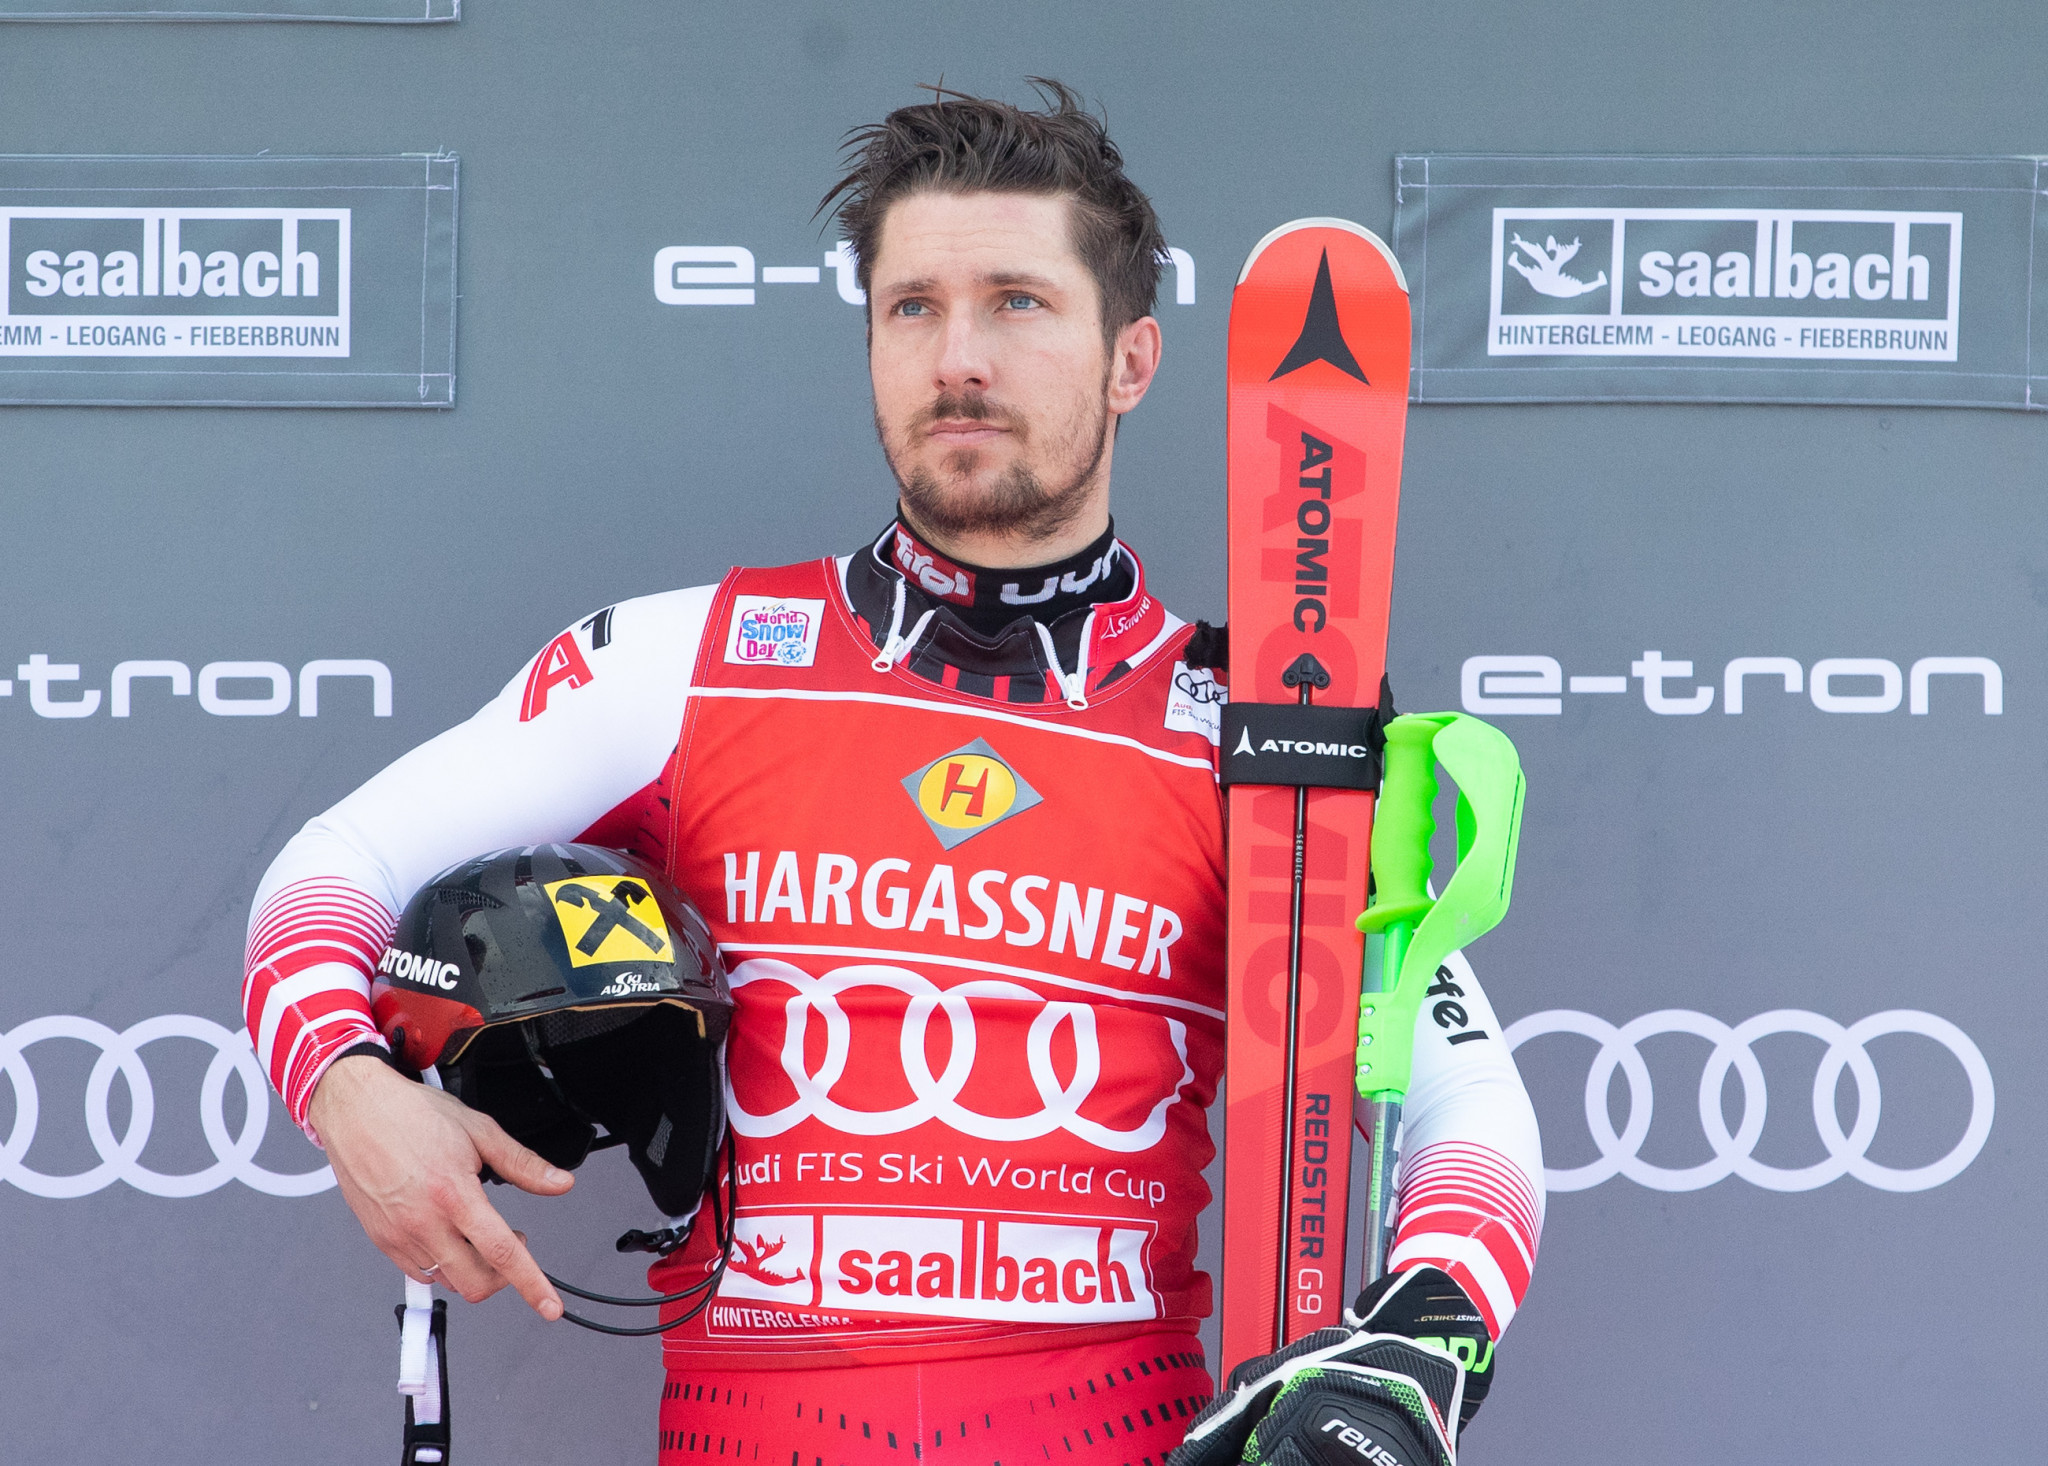 Hirscher wins slalom event at FIS Alpine Skiing World Cup to become greatest Austrian skier of all time